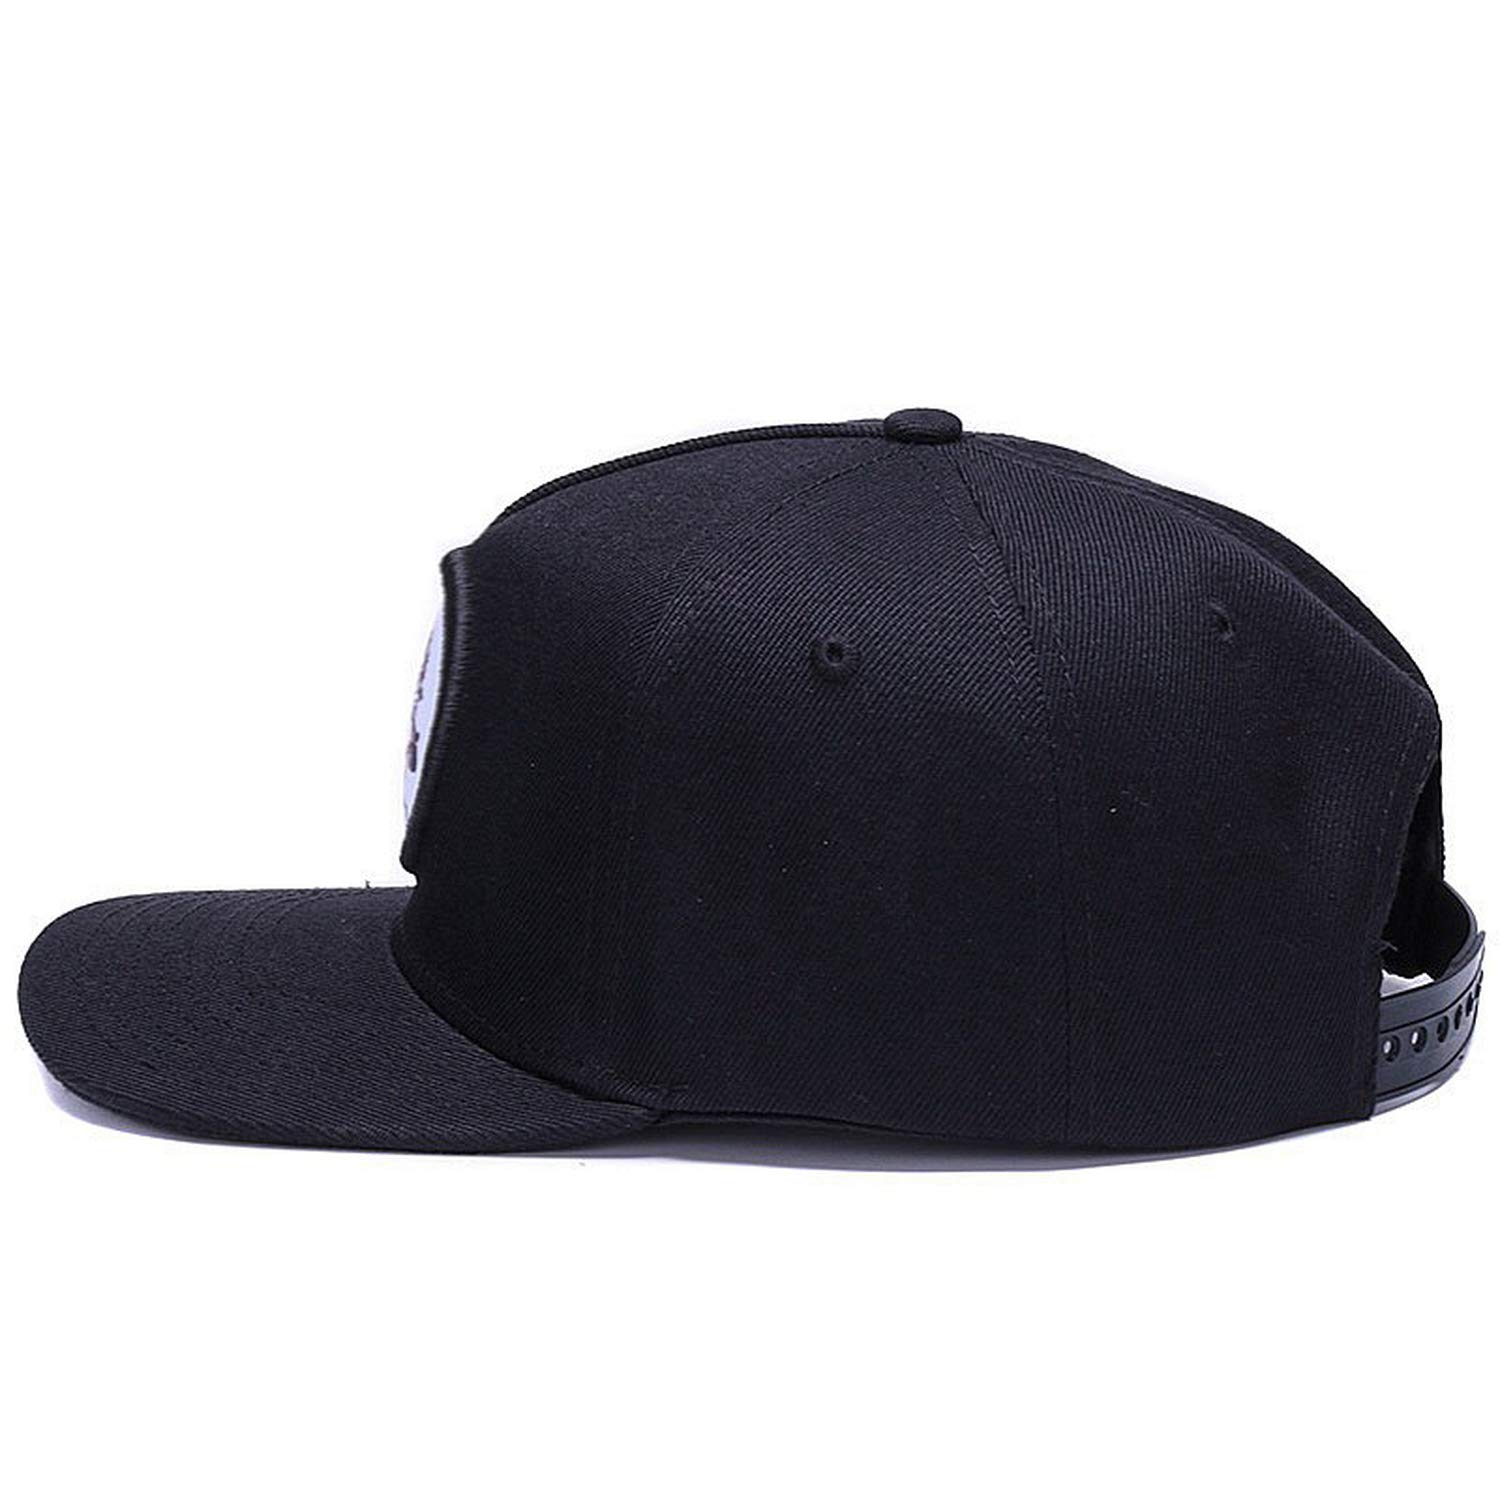 Amazon.com: Original Bone Baseball Cap Snapback Hip hop Hats Gorras Fitted Flat Bill Snapback Cap Black: Clothing